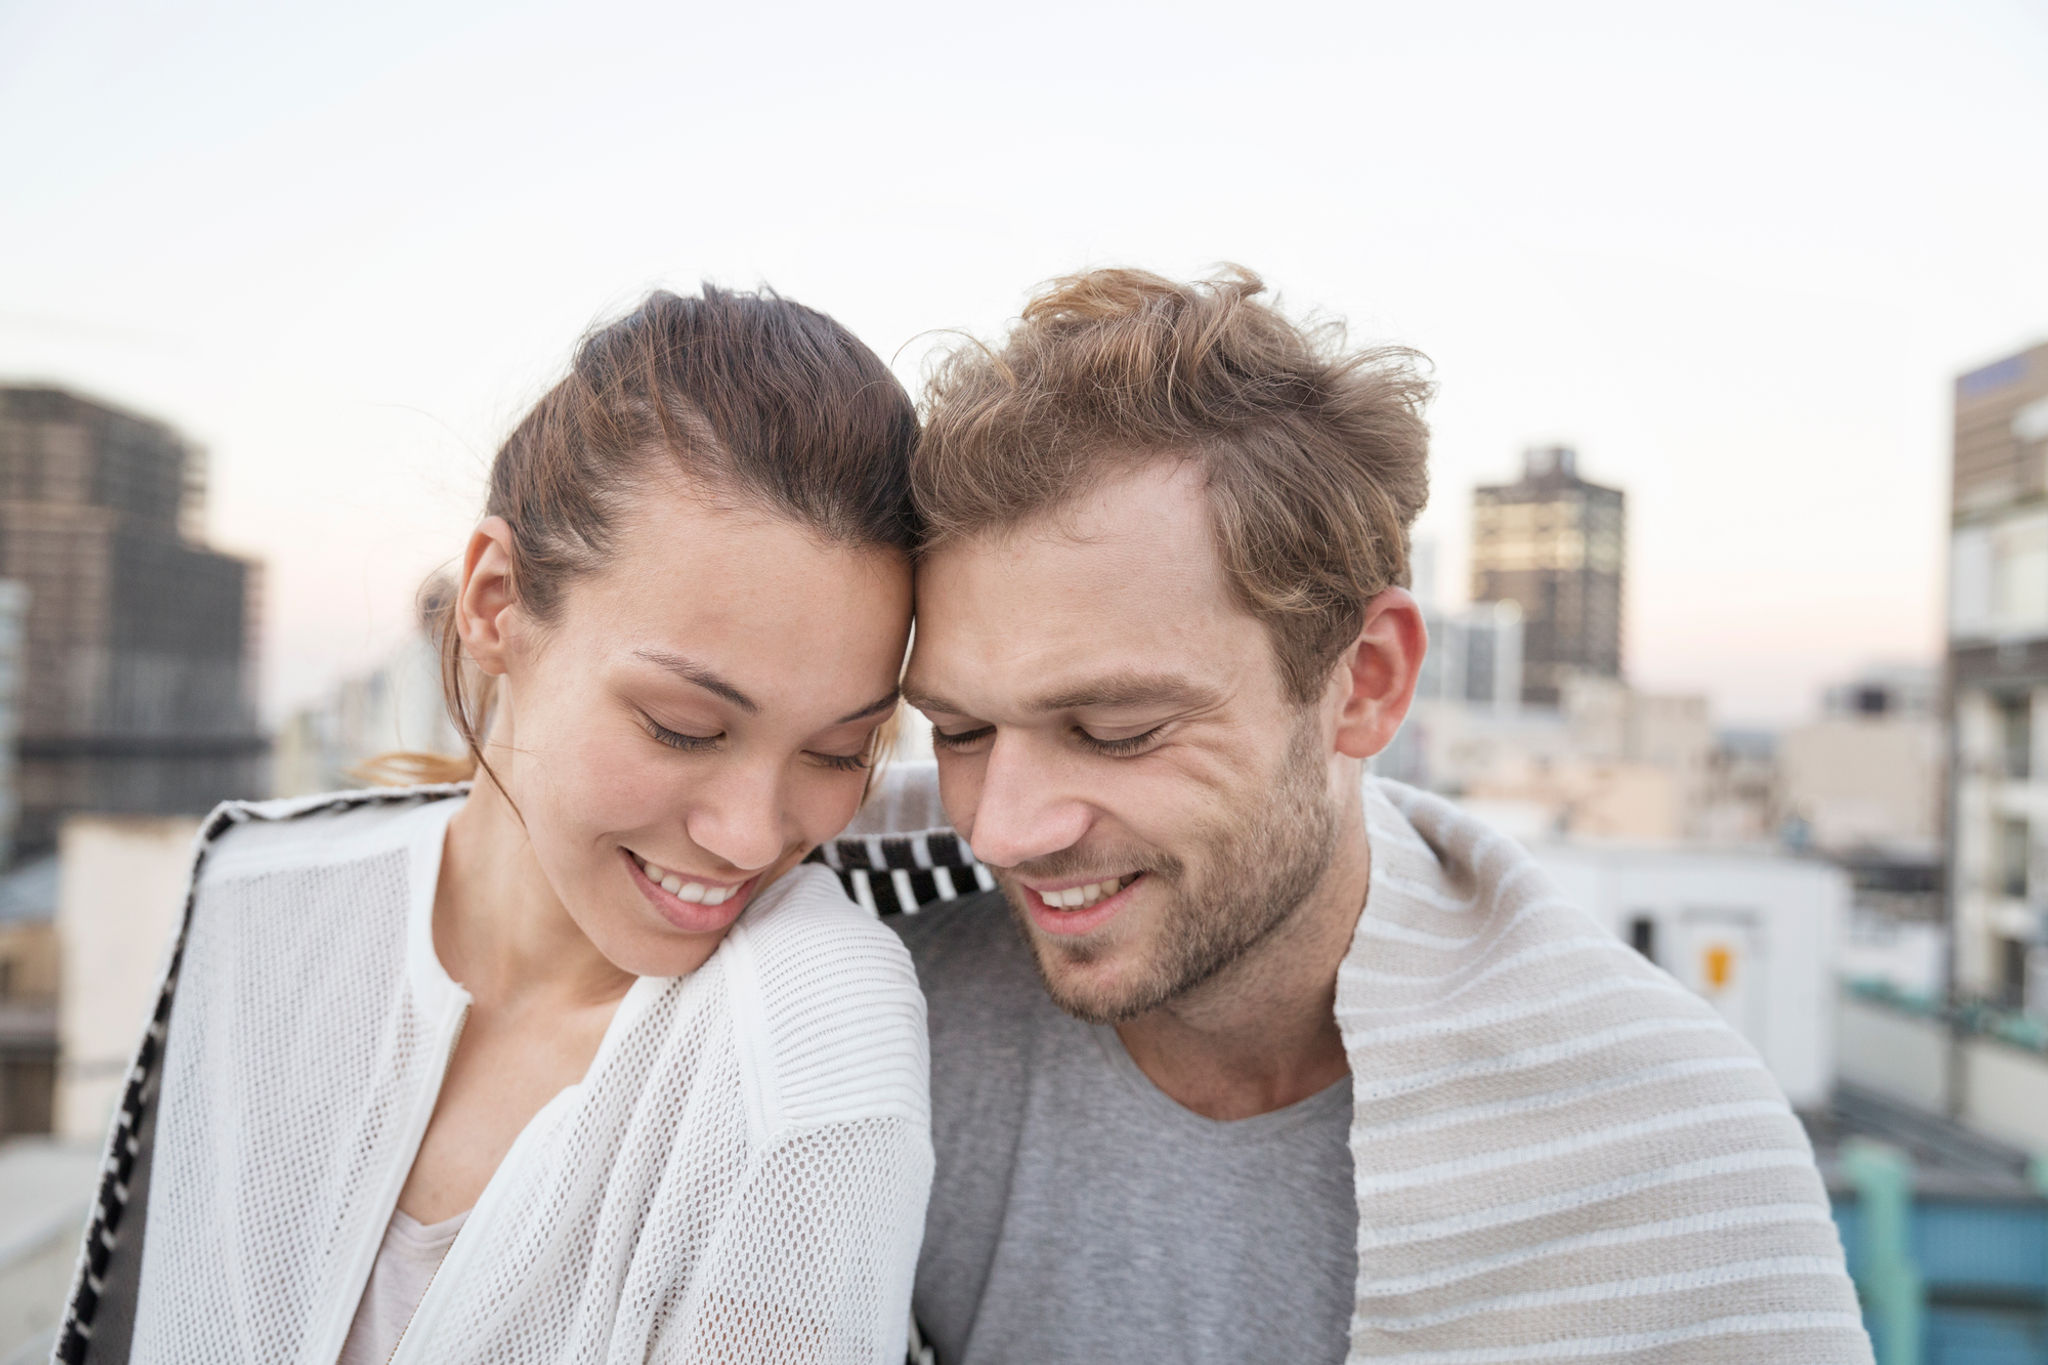 Three daily marriage habits better than vacation